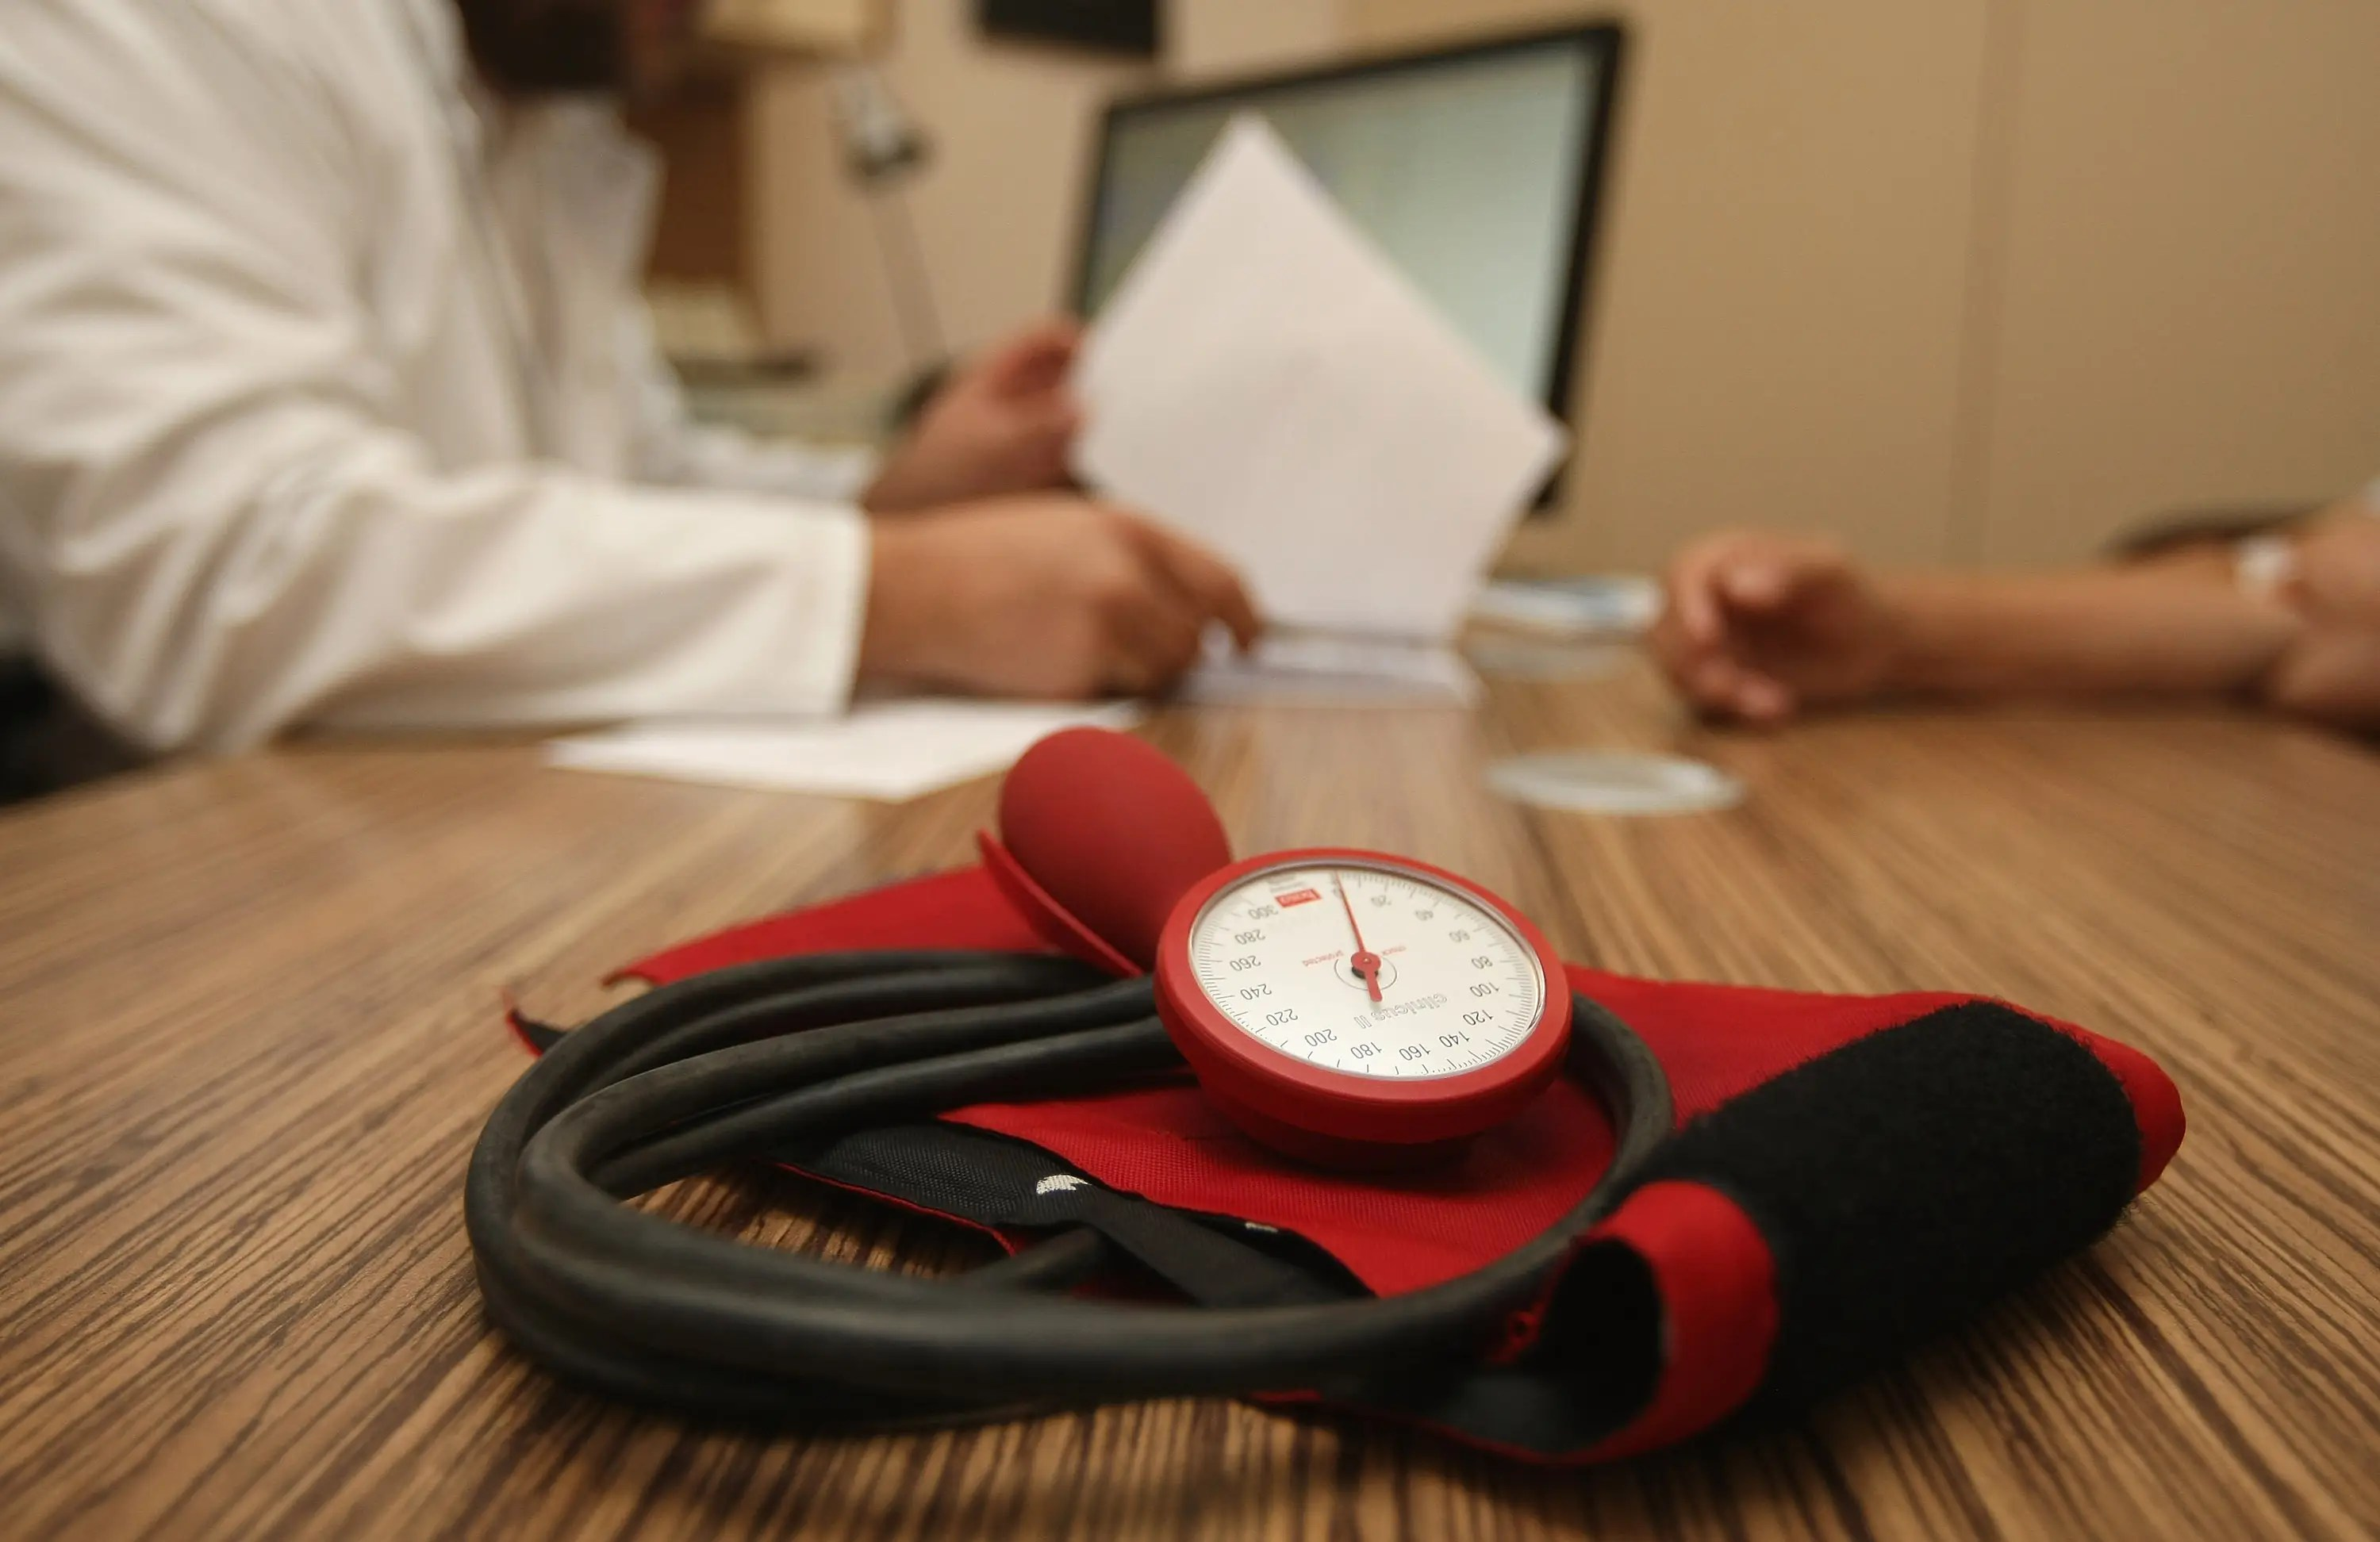 stethoscope doctor healthcare